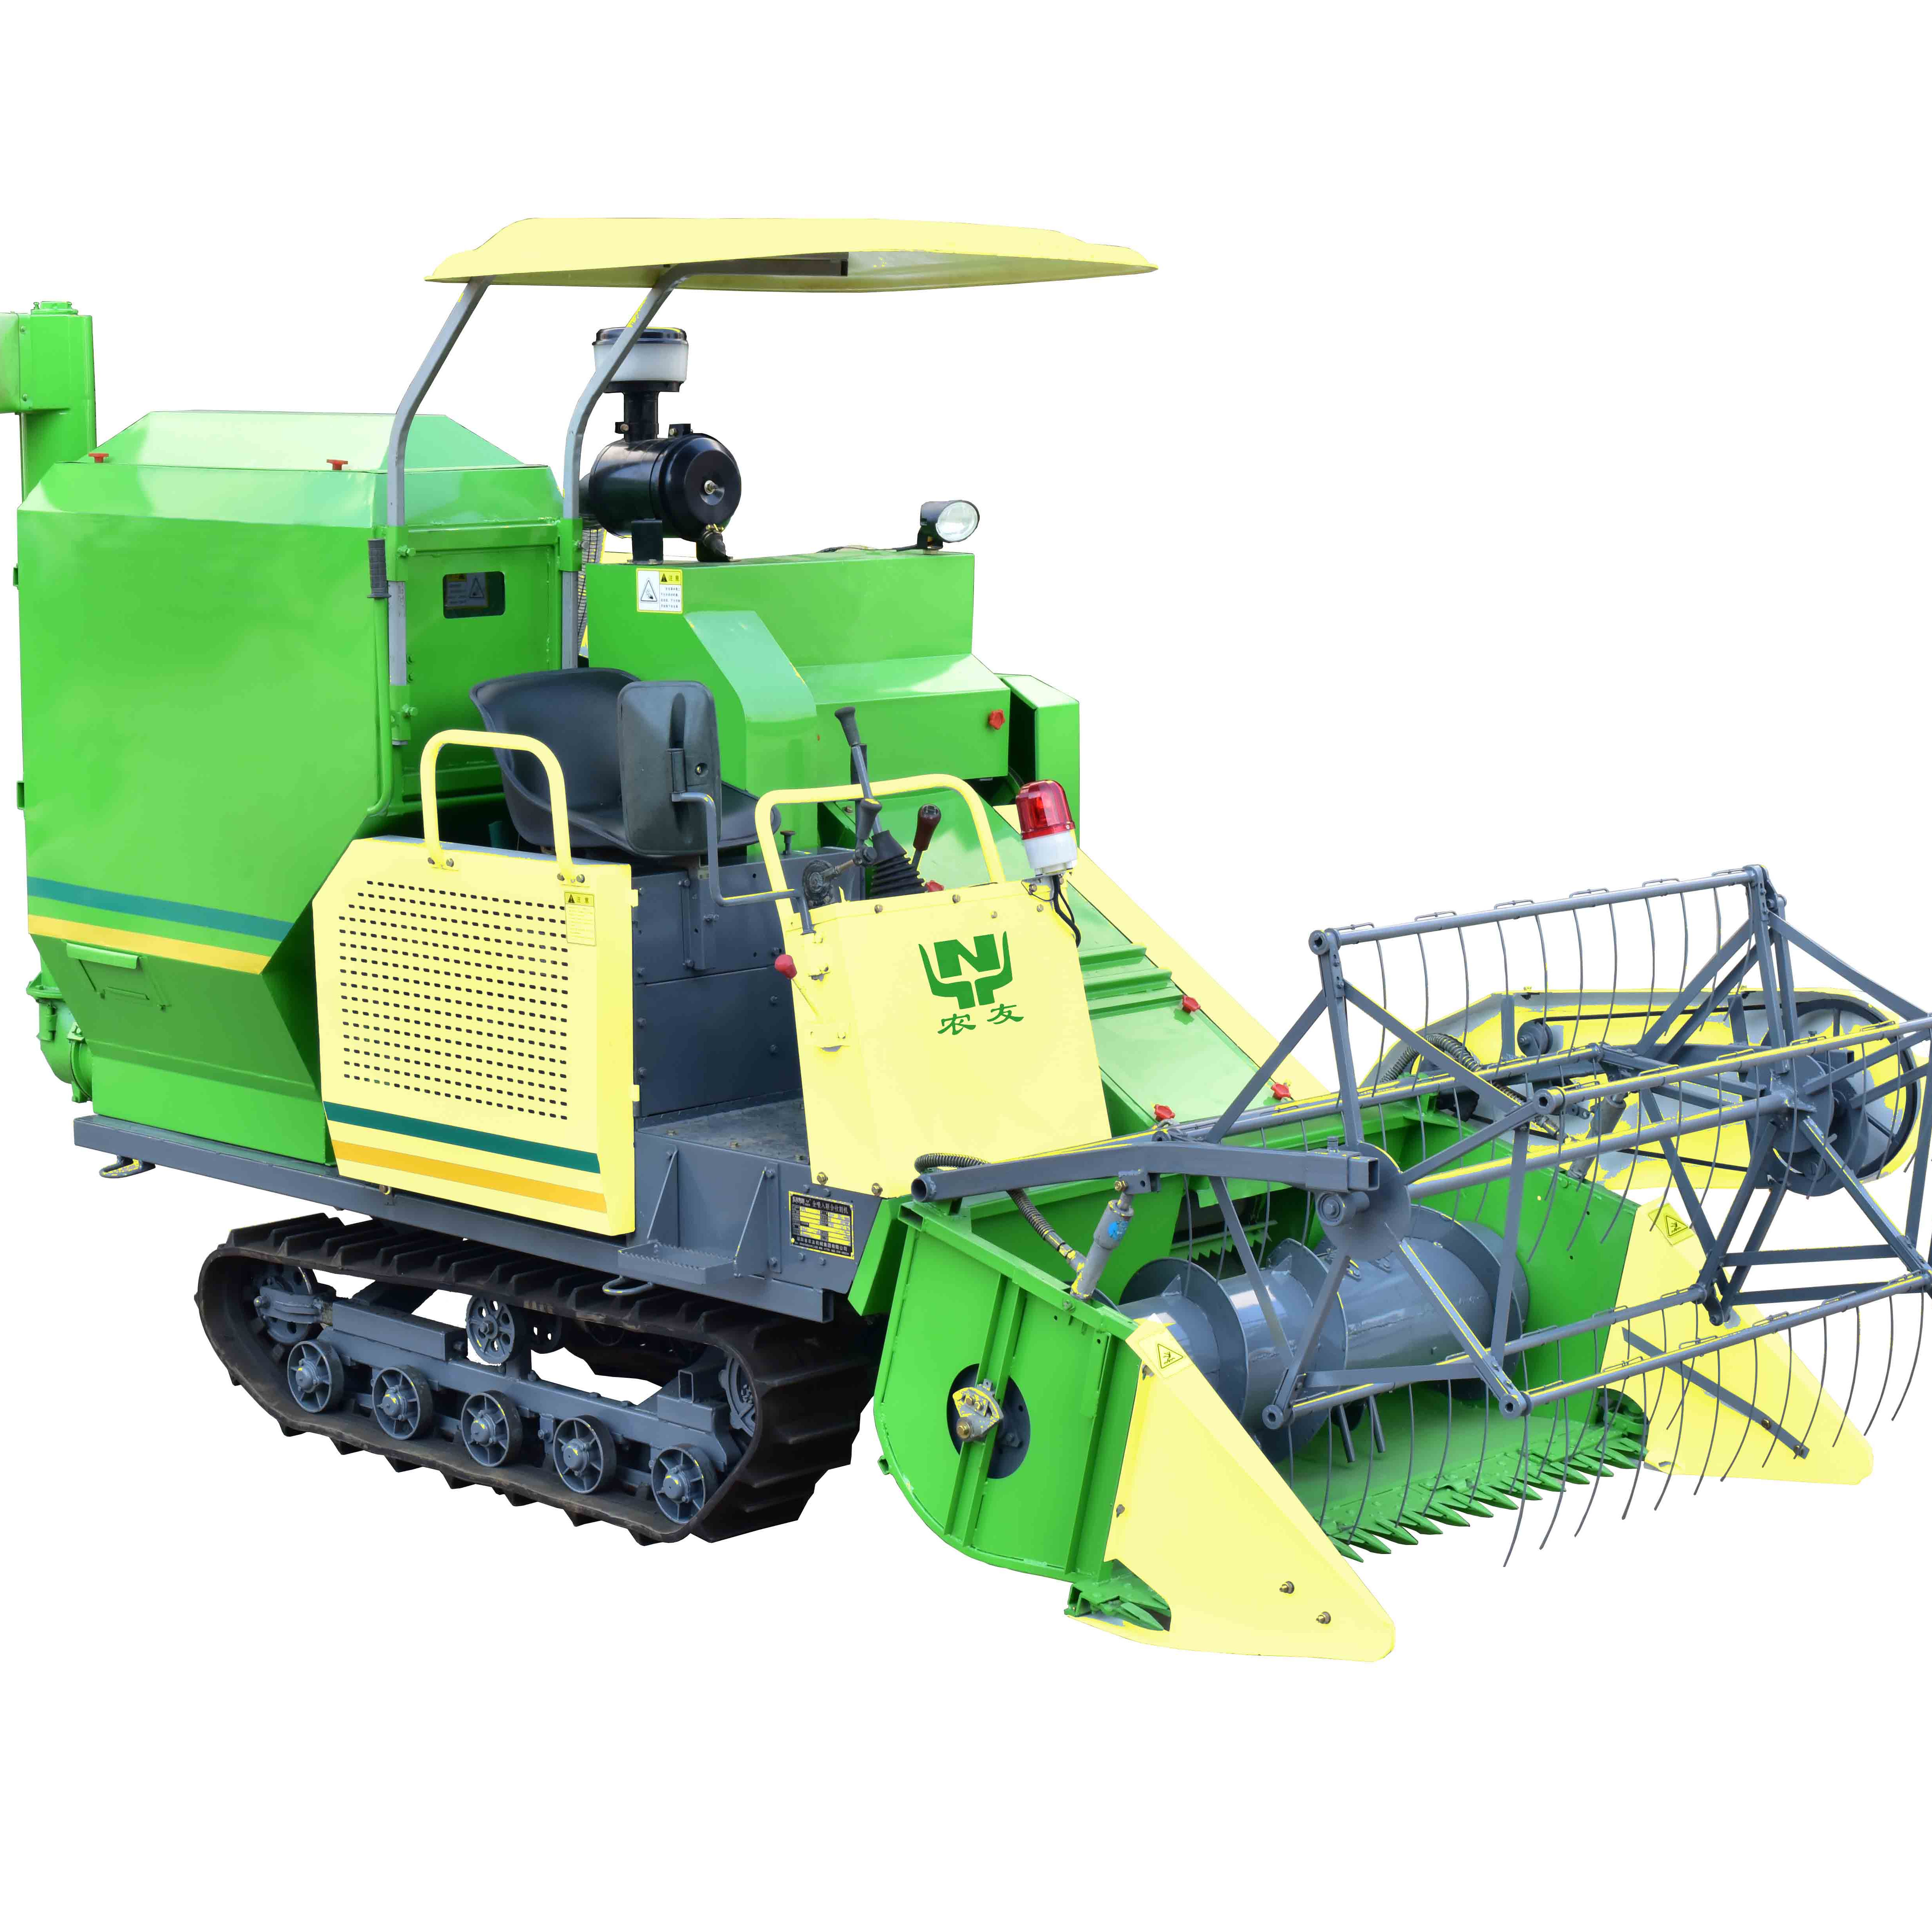 Rice Harvester Agriculture Machinery Wheat Combine Harvester 4LZ-2.2 Z